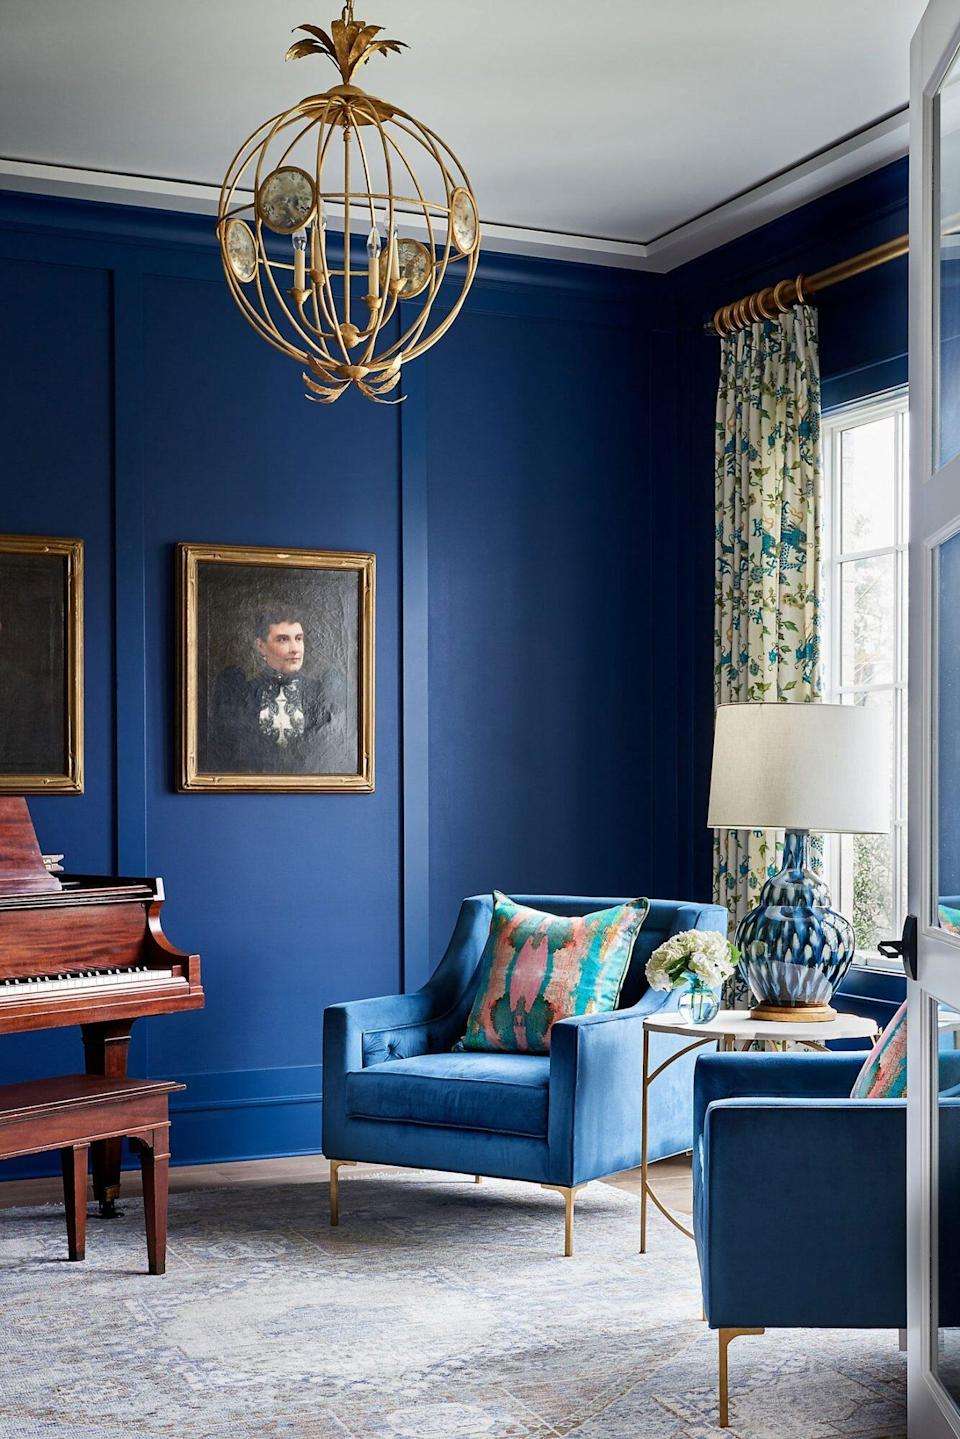 Benjamin Moore Downpour Blue 2063-20 Living Room Walls with Piano